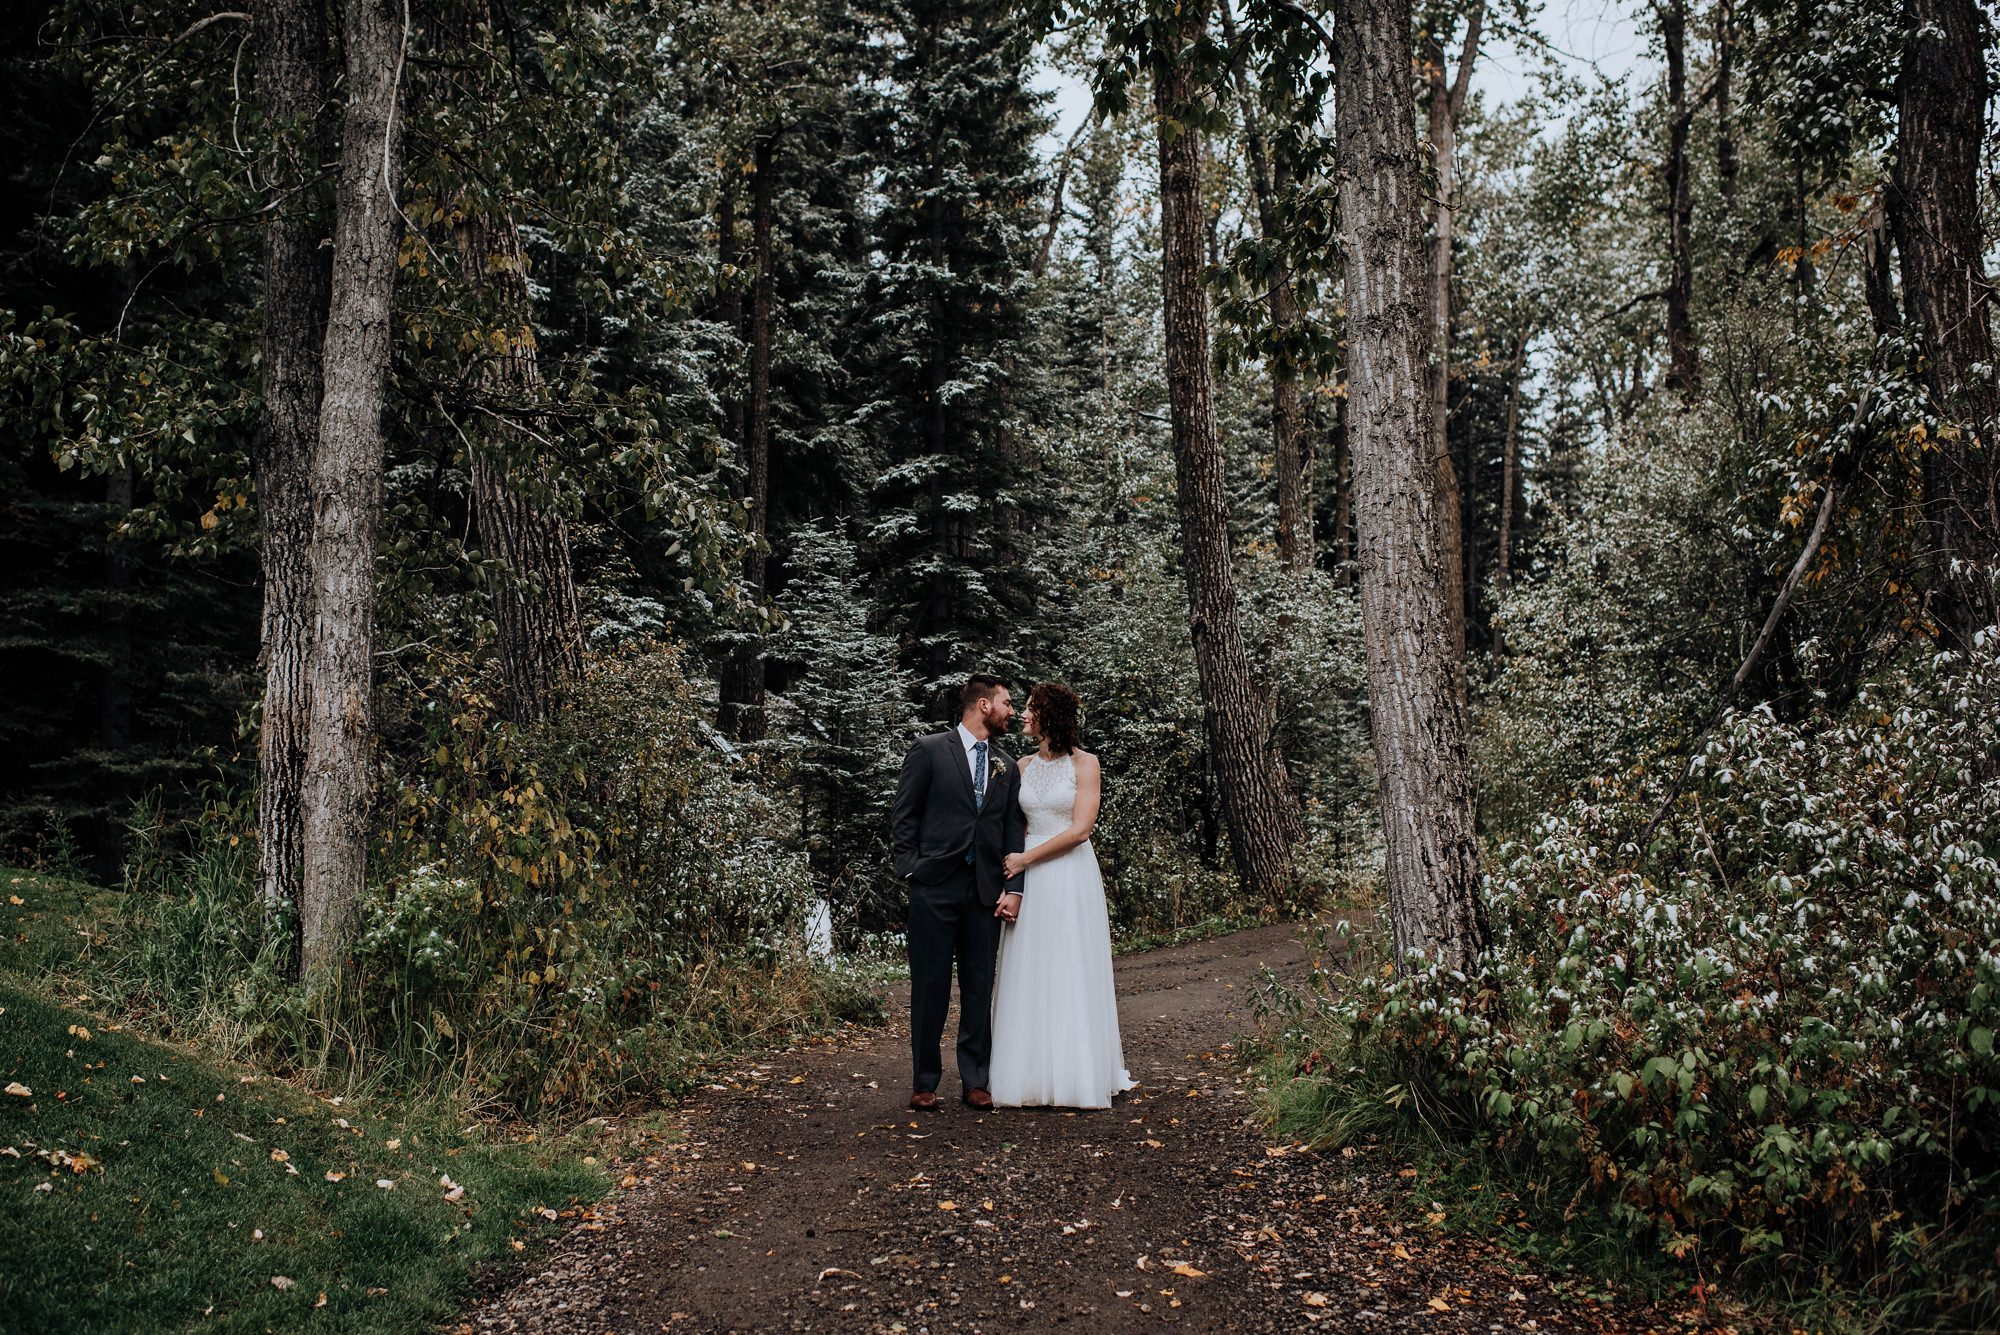 portraits of bride and groom in the forest in the fall time at stylish modern and classic wedding at Calgary golf club river spirit golf and country club